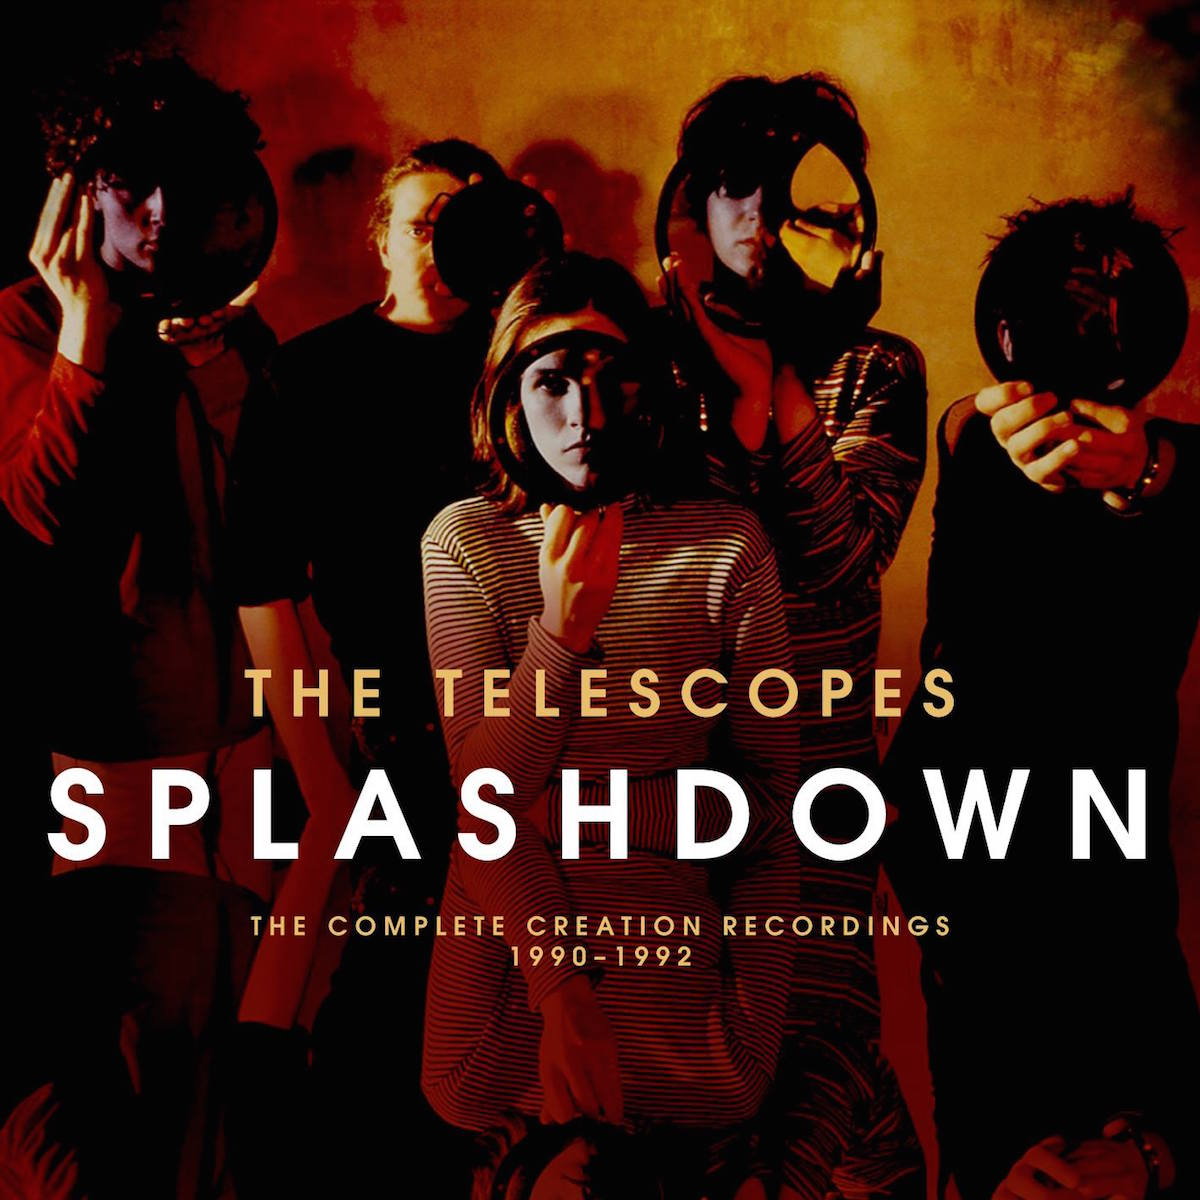 The Telescopes - Complete Creation Recordings